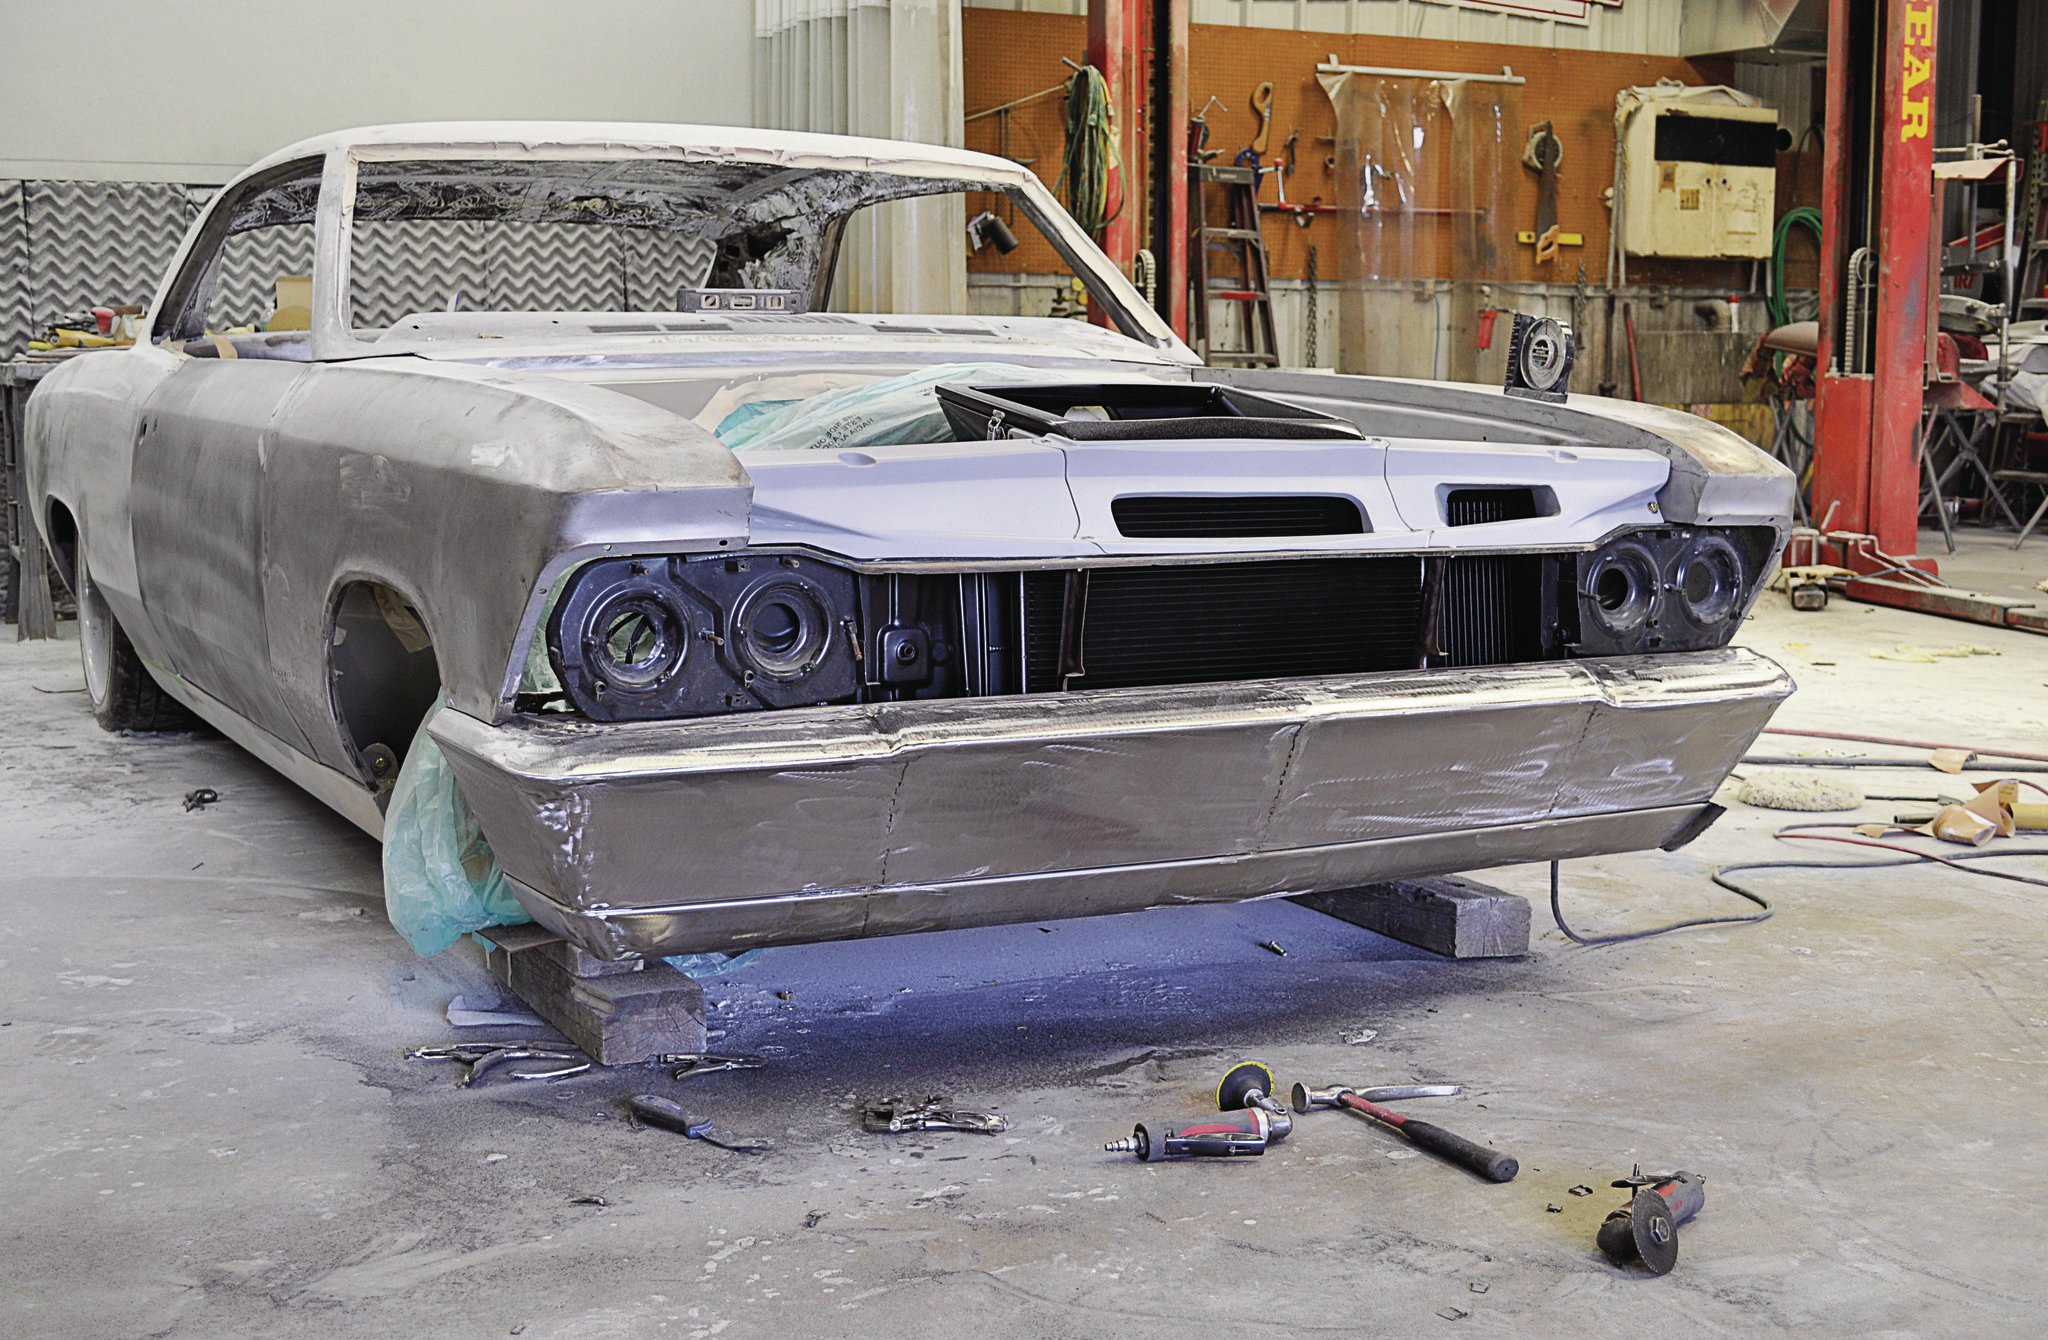 With the body and chassis reunited, the final fabrication and tweaks can be performed before the body is painted. Here the bumper is heavily reworked and an aluminum chin has been fabbed.